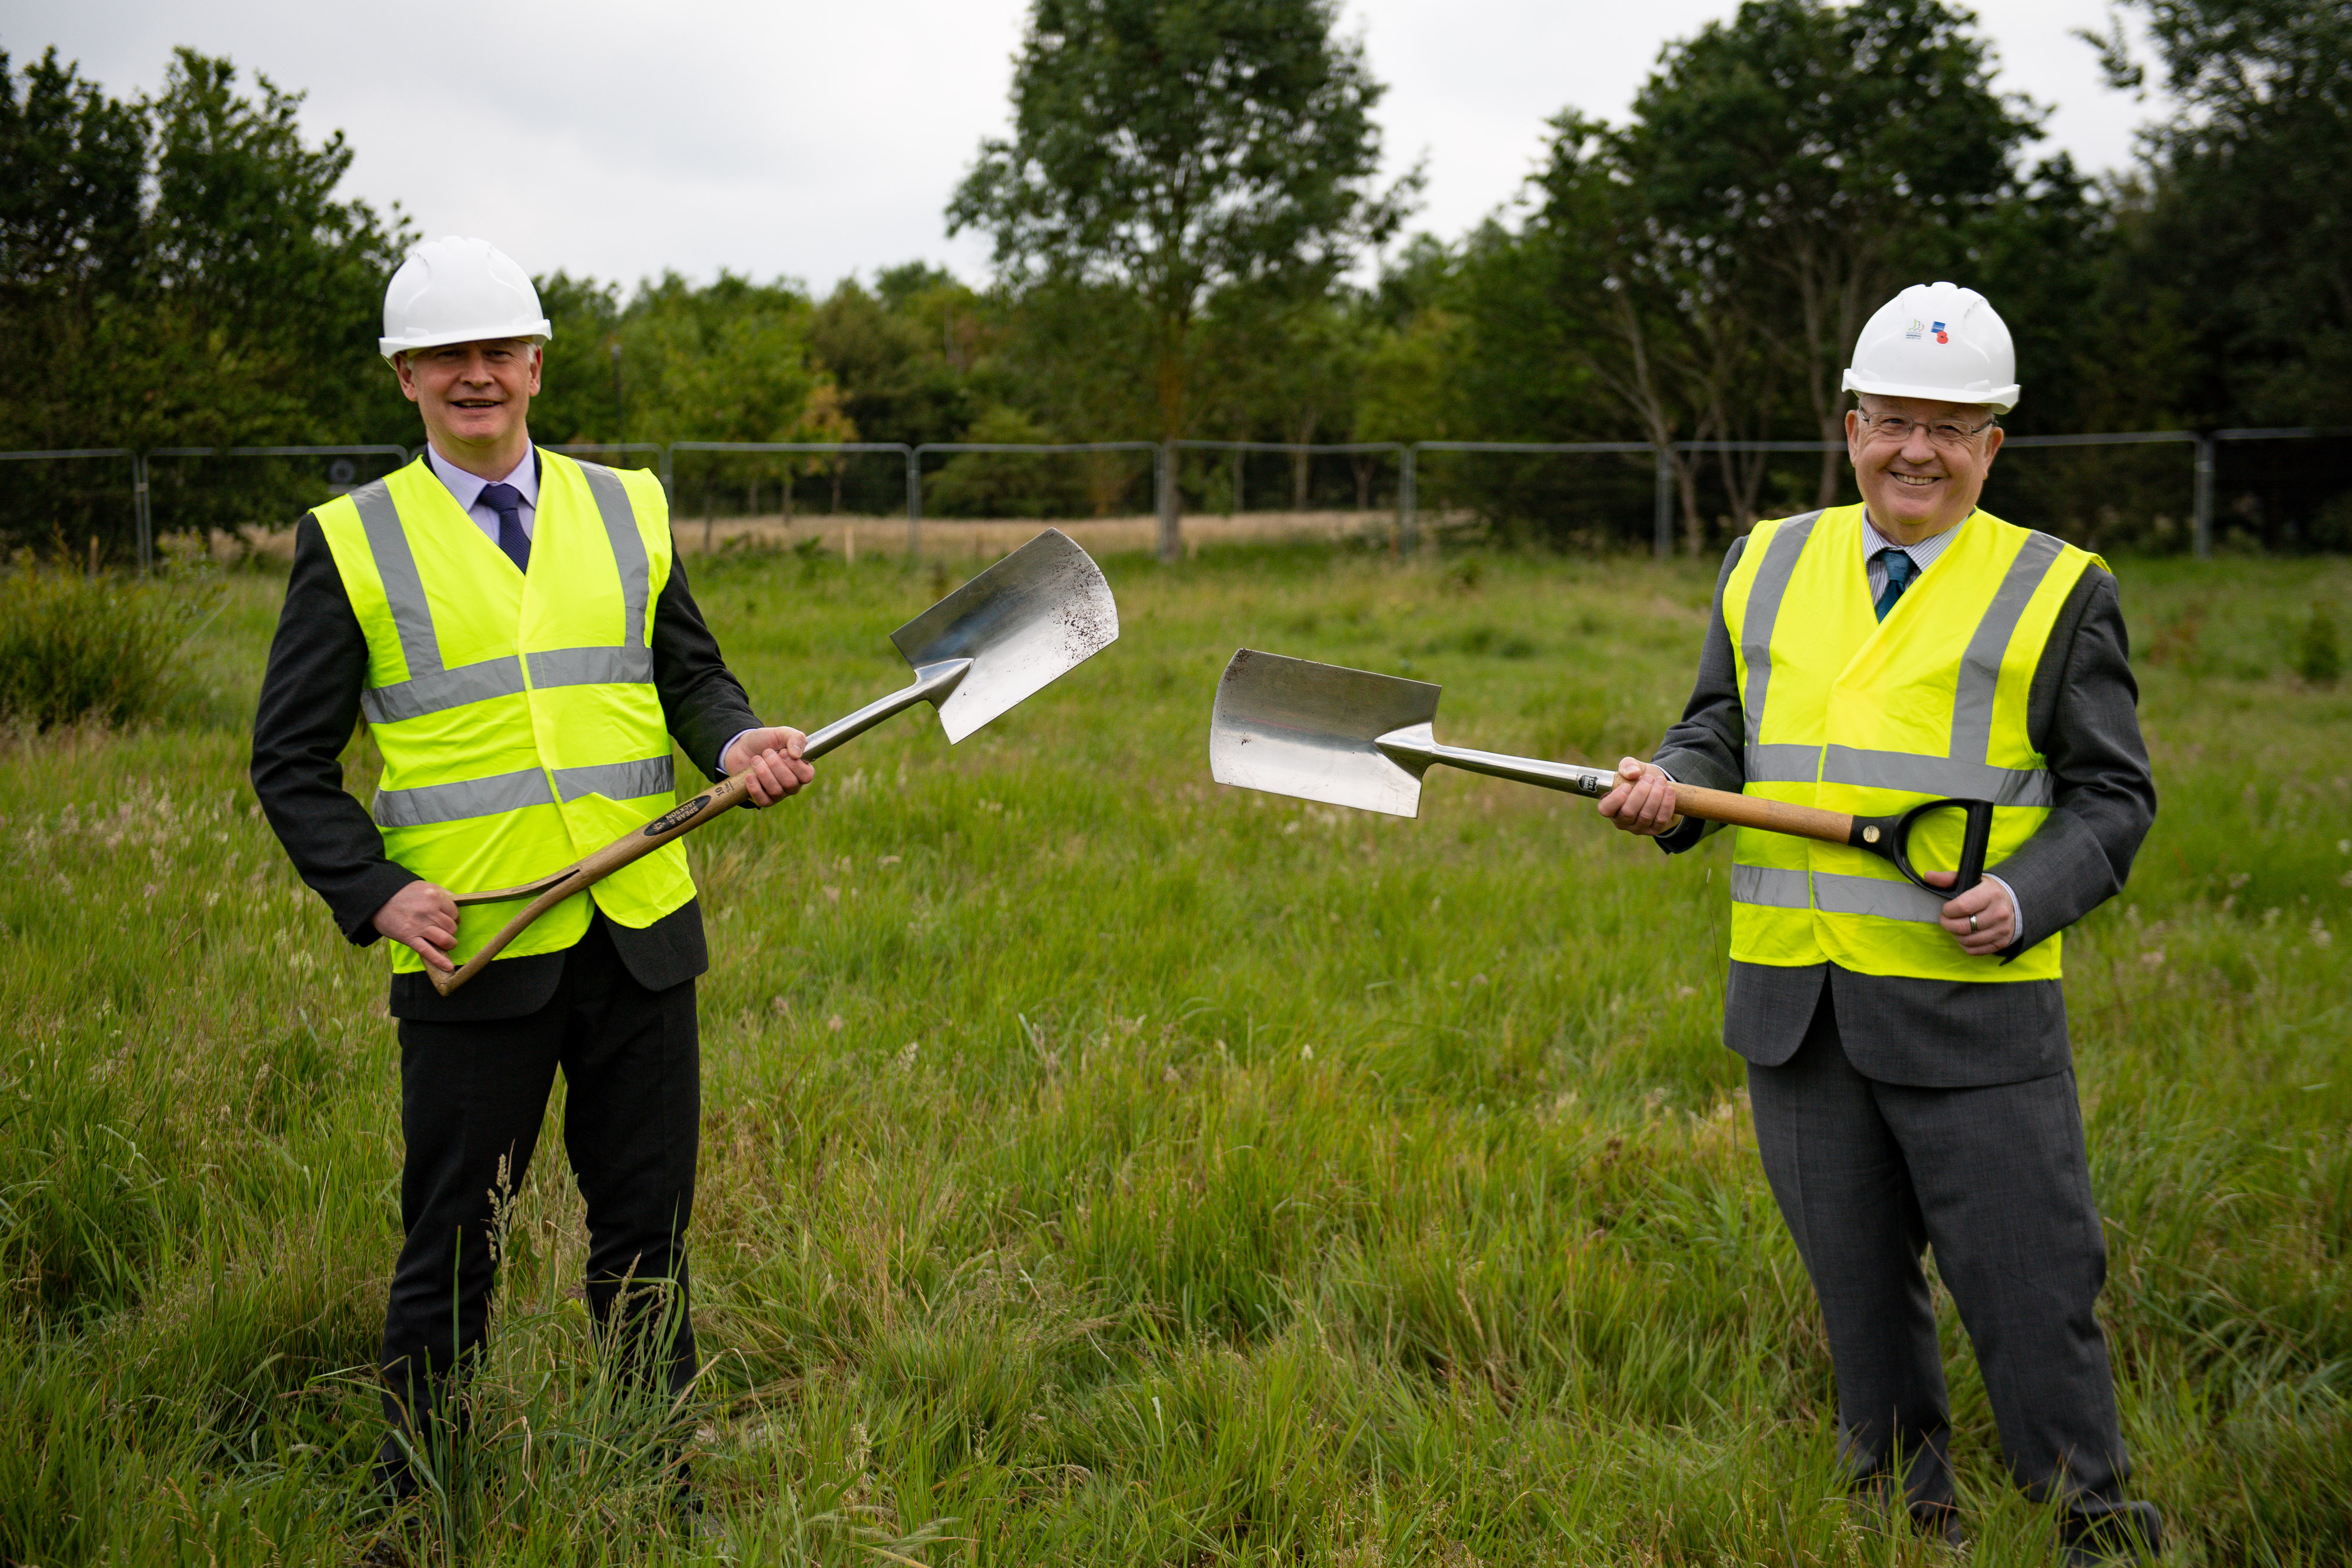 Bryn Hughes (L), the father of Pc Nicola Hughes, and Paul Bone, the father of Pc Fiona Bone, during a groundbreaking ceremony for the new UK Police Memorial at the National Memorial Arboretum in Alreewas, Staffordshire.